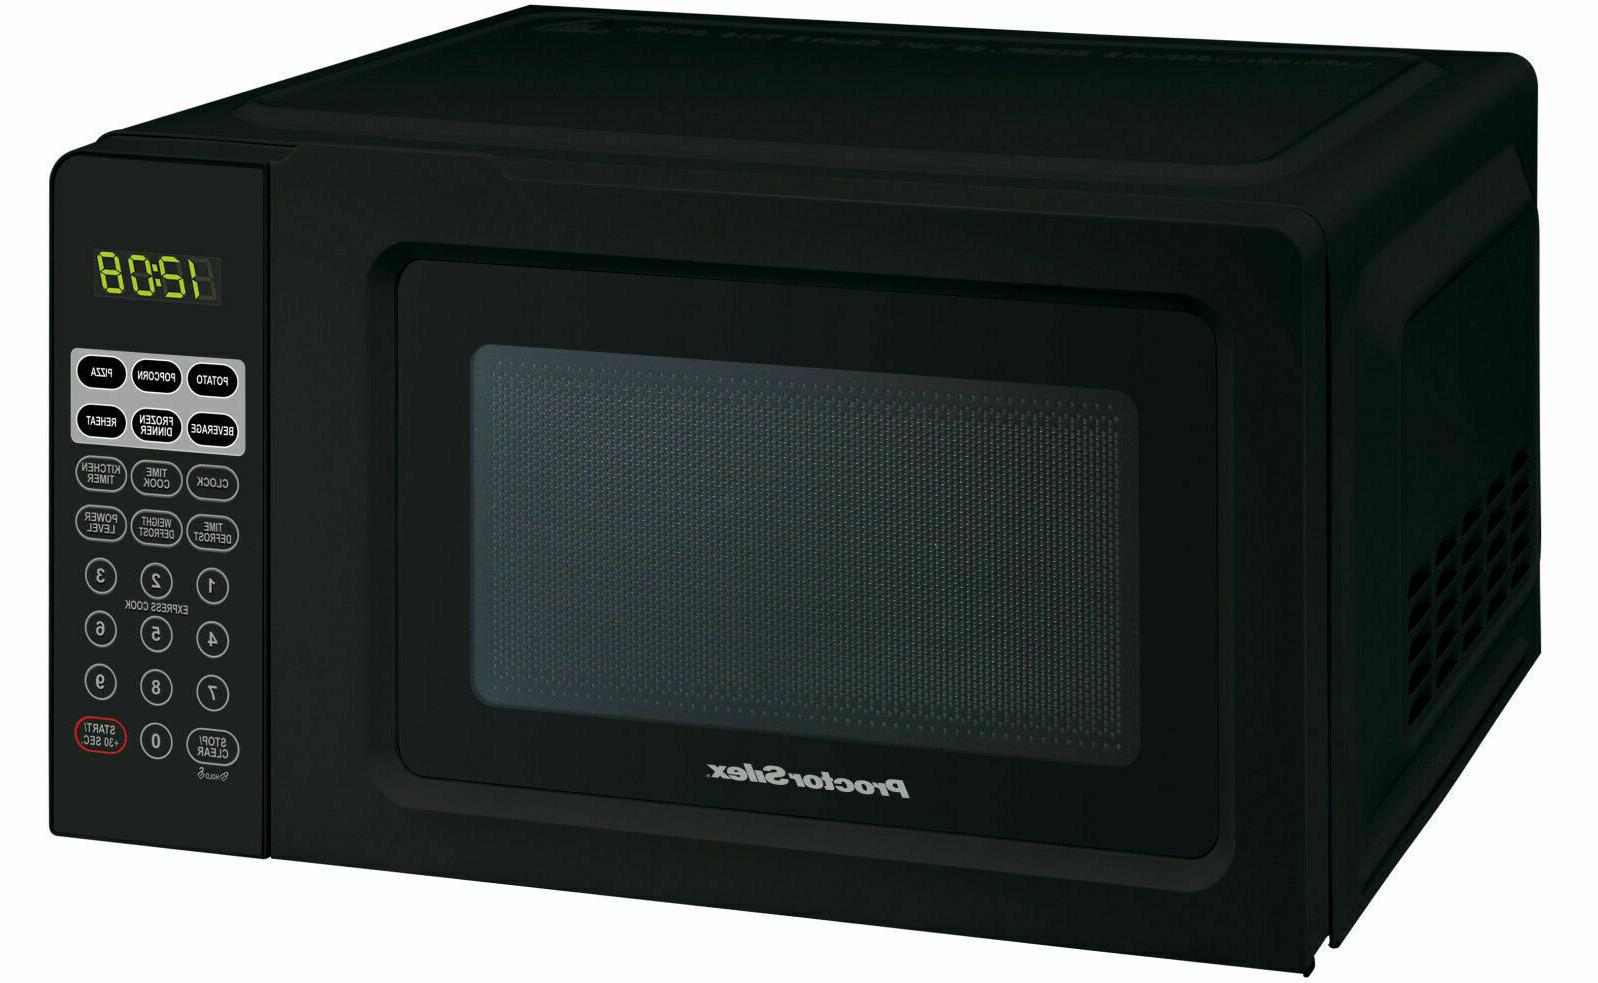 Countertop Microwave Oven Kitchen Home Office Dorm Digital L